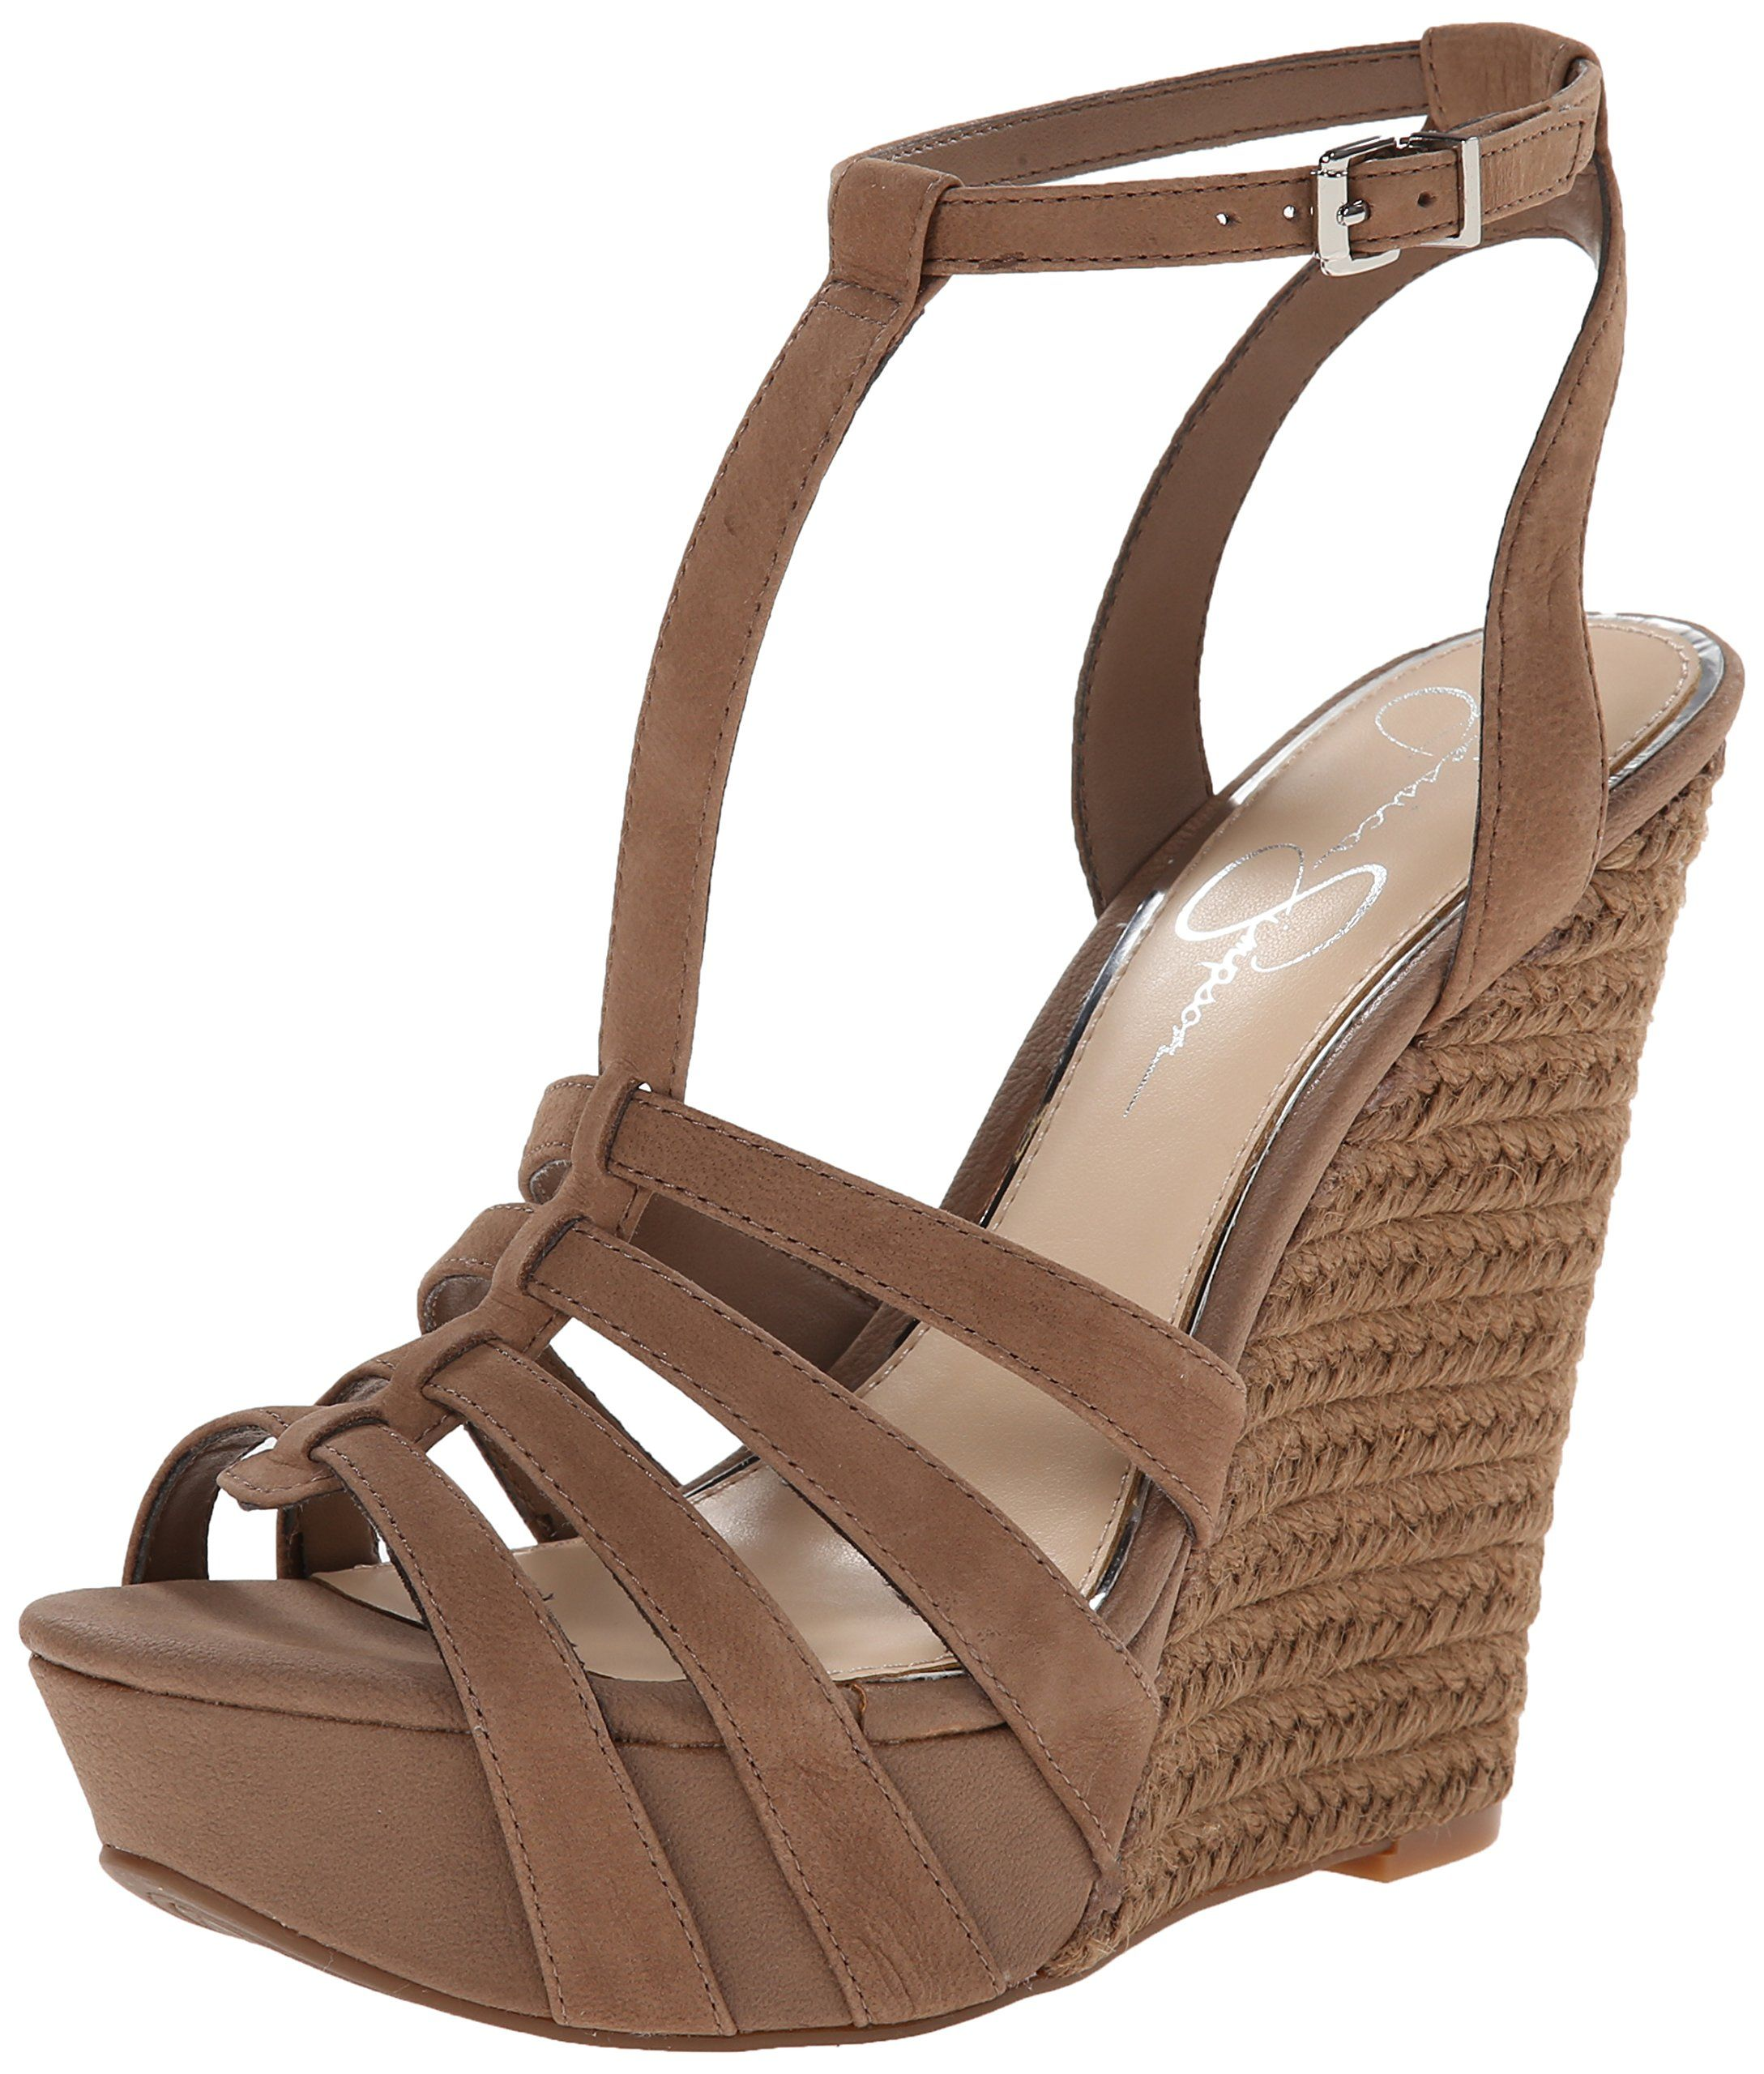 05fc7abb91 Amazon.com: Jessica Simpson Women's Bristol Wedge Sandal: Clothing ...